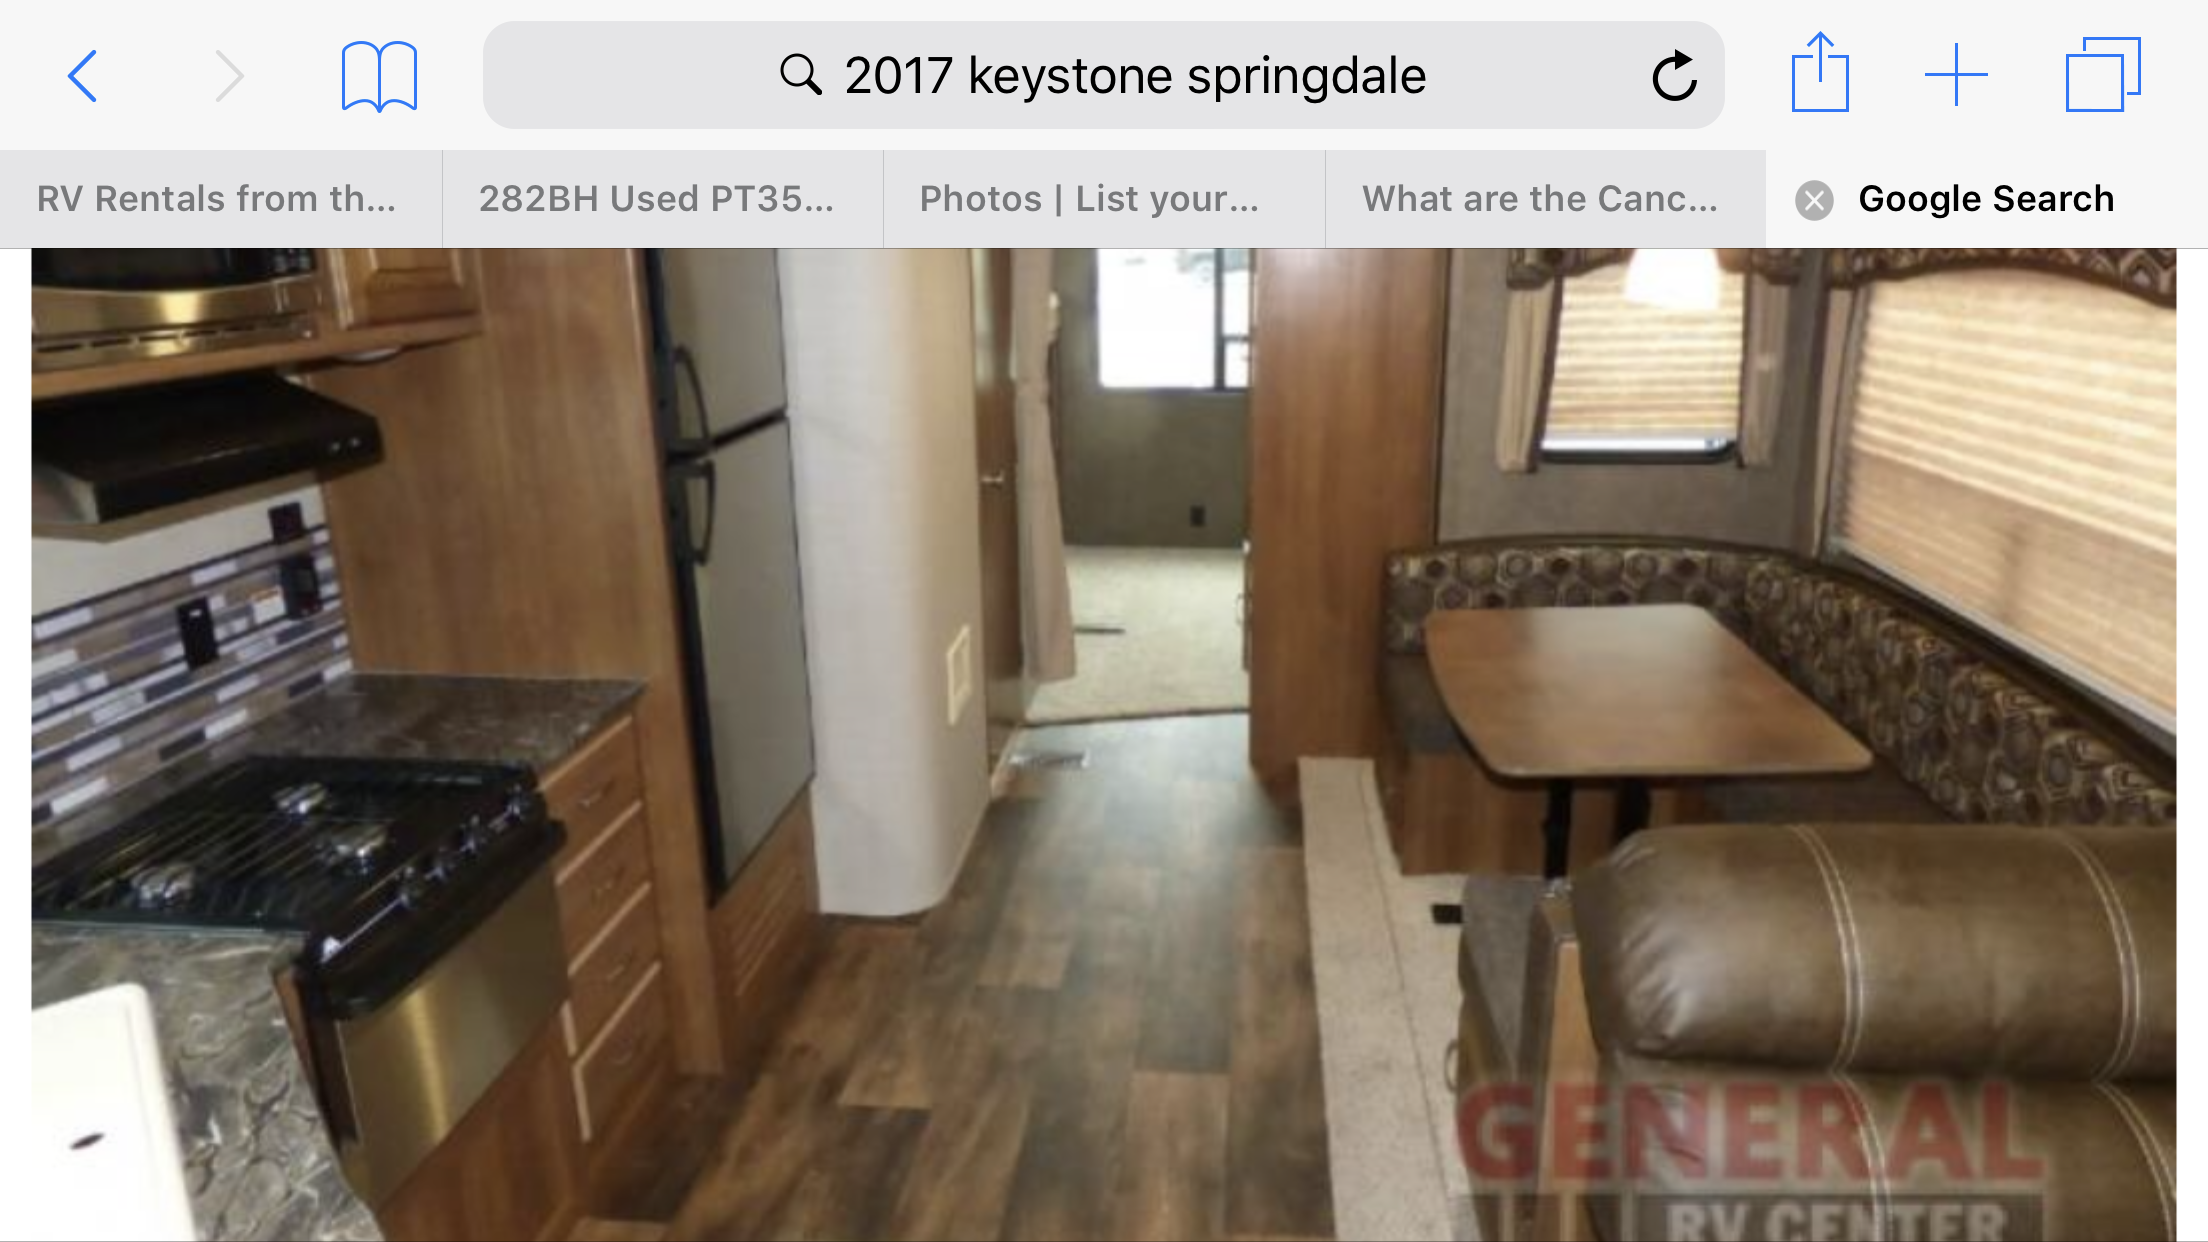 Spacious living area and kitchen with lots of windows and flat screen television. . Keystone Springdale 2017